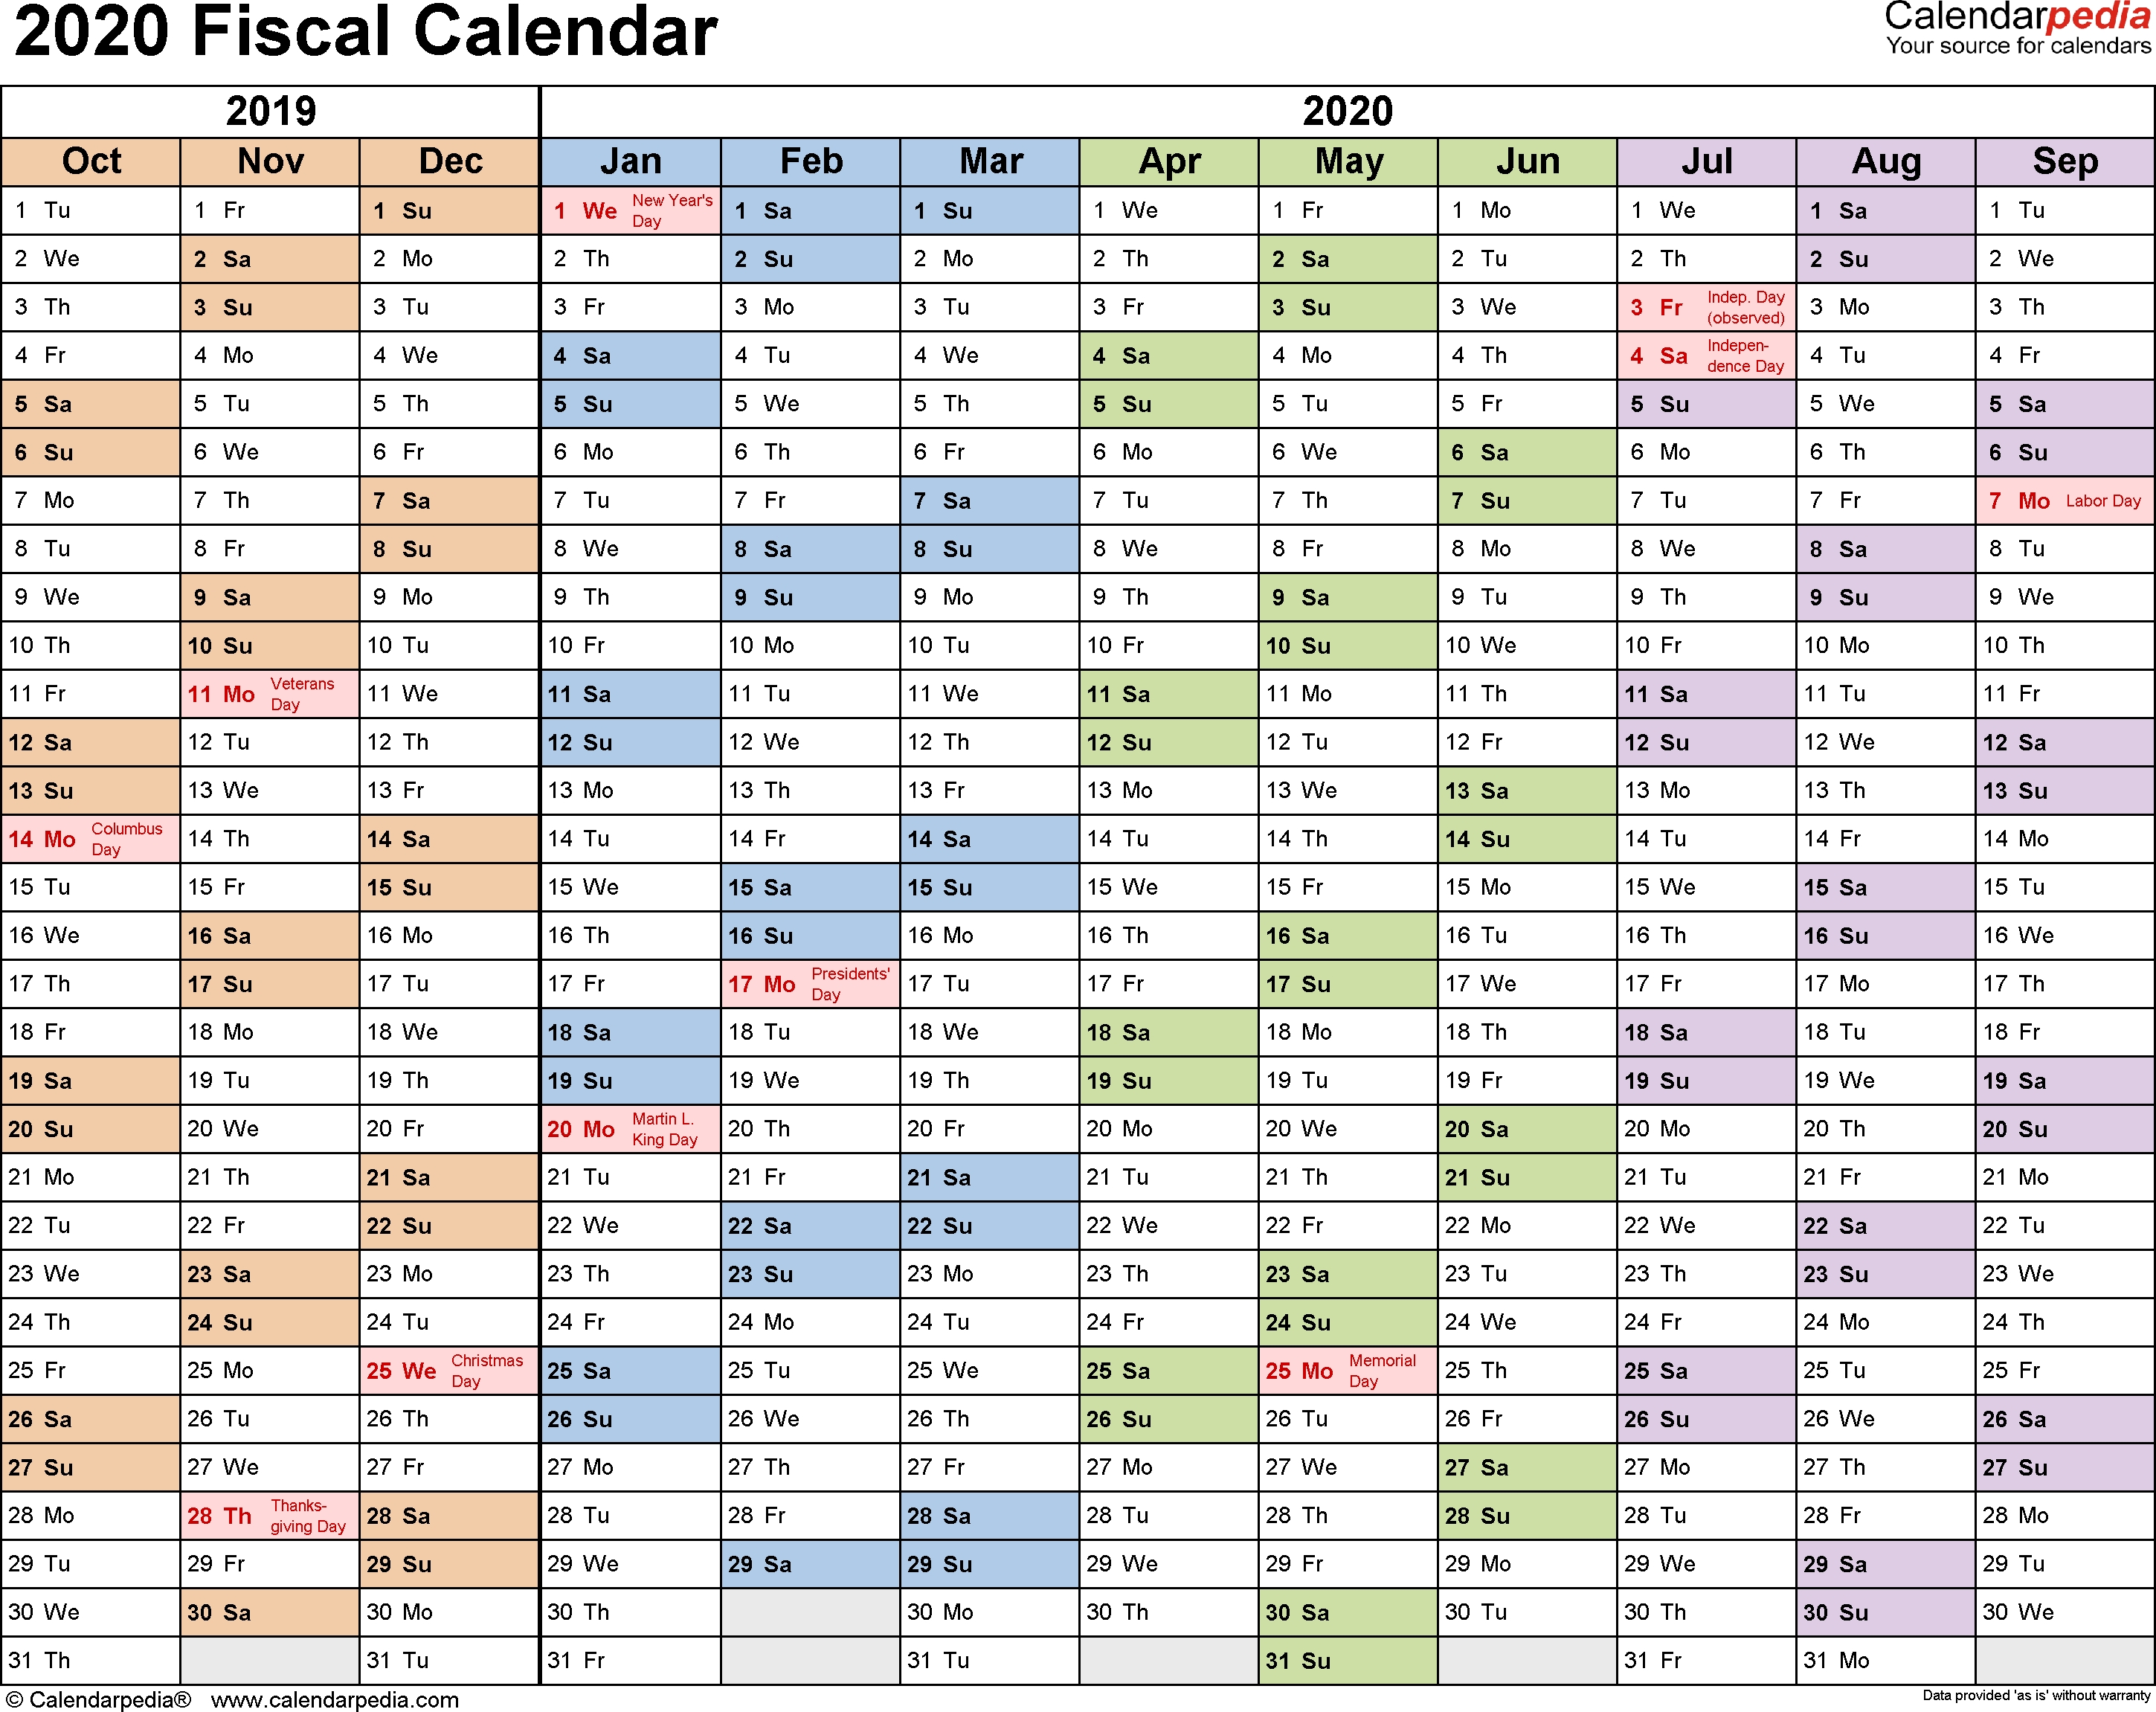 Fiscal Calendars 2020 As Free Printable Pdf Templates for Print 2019/2020 Financial Year Calendar On One Page